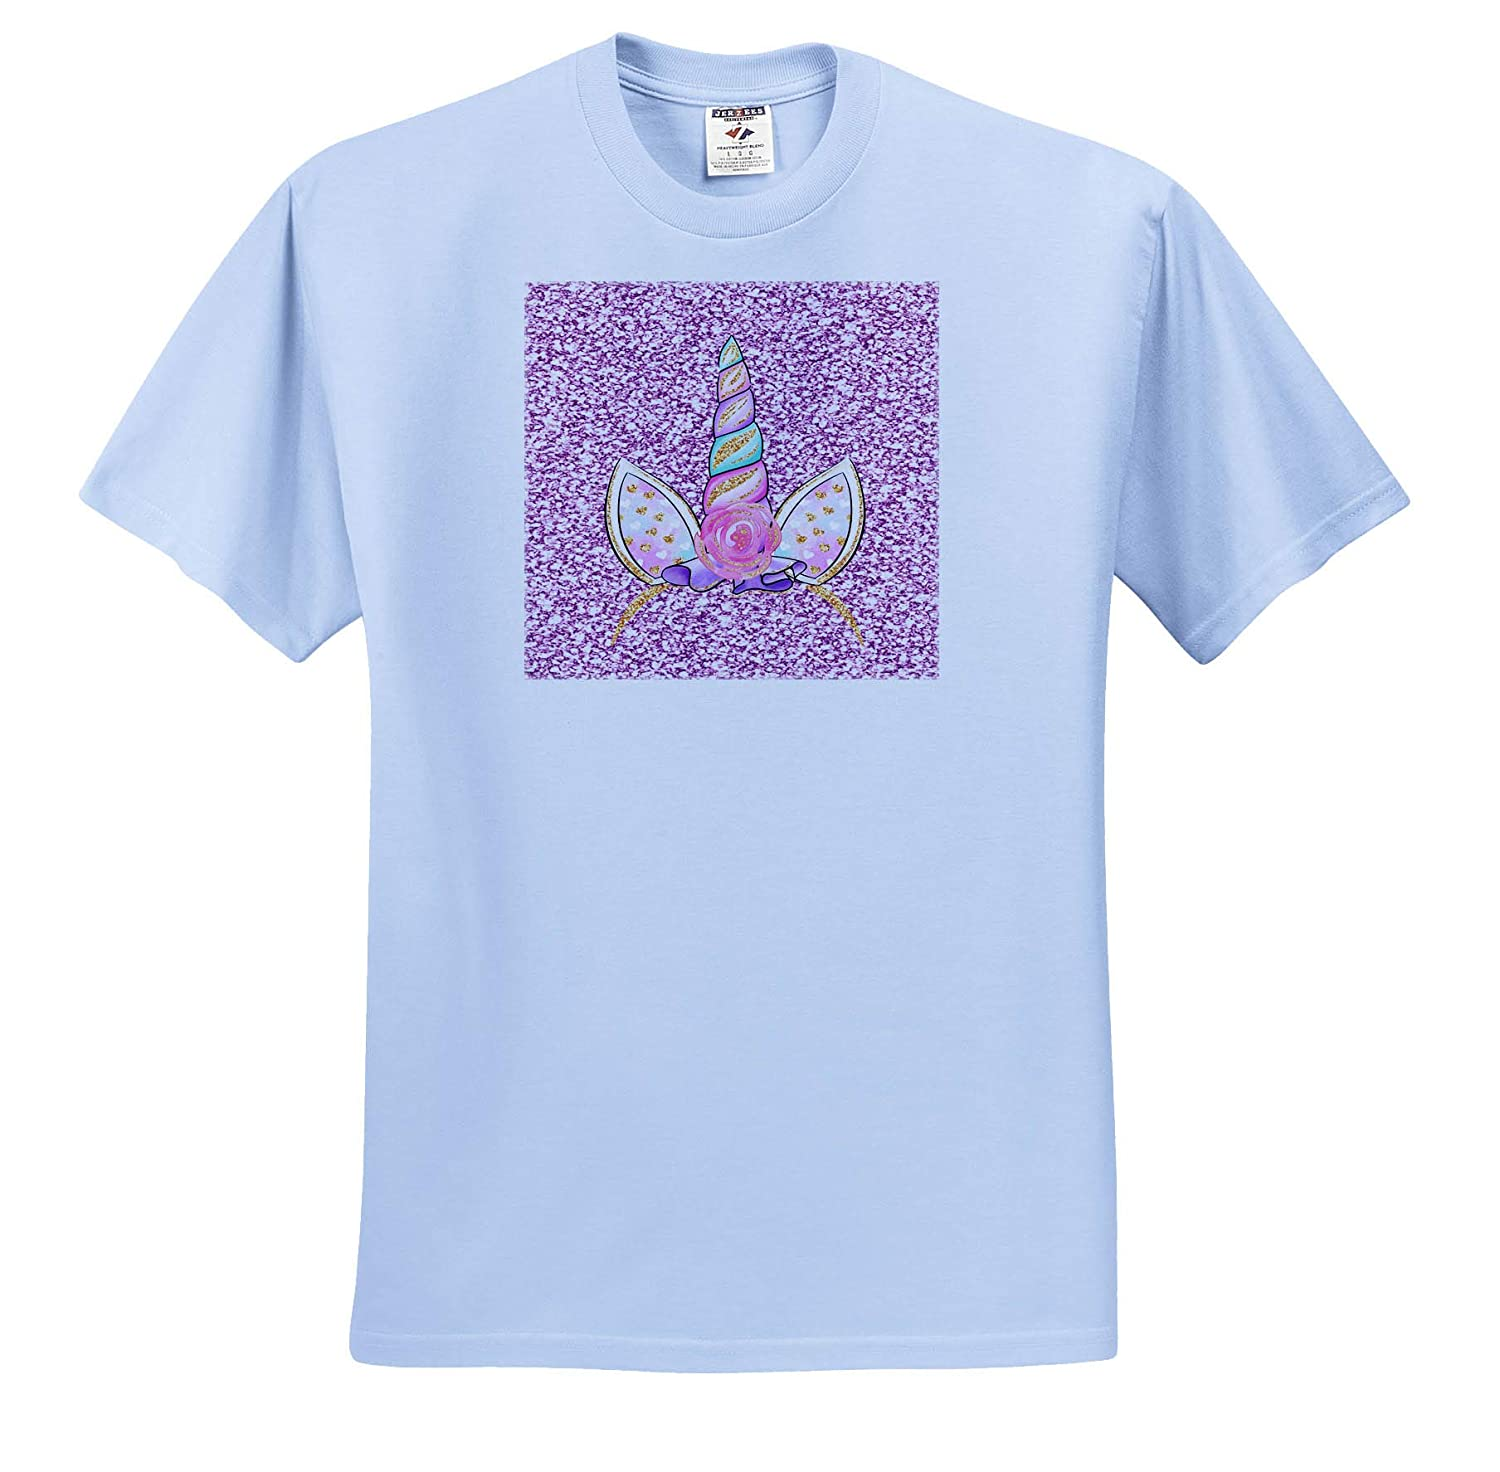 Art- Unicorn Headpiece Unicorn Headpiece on Sparkle Printed Background 3dRose Made in The Highlands T-Shirts